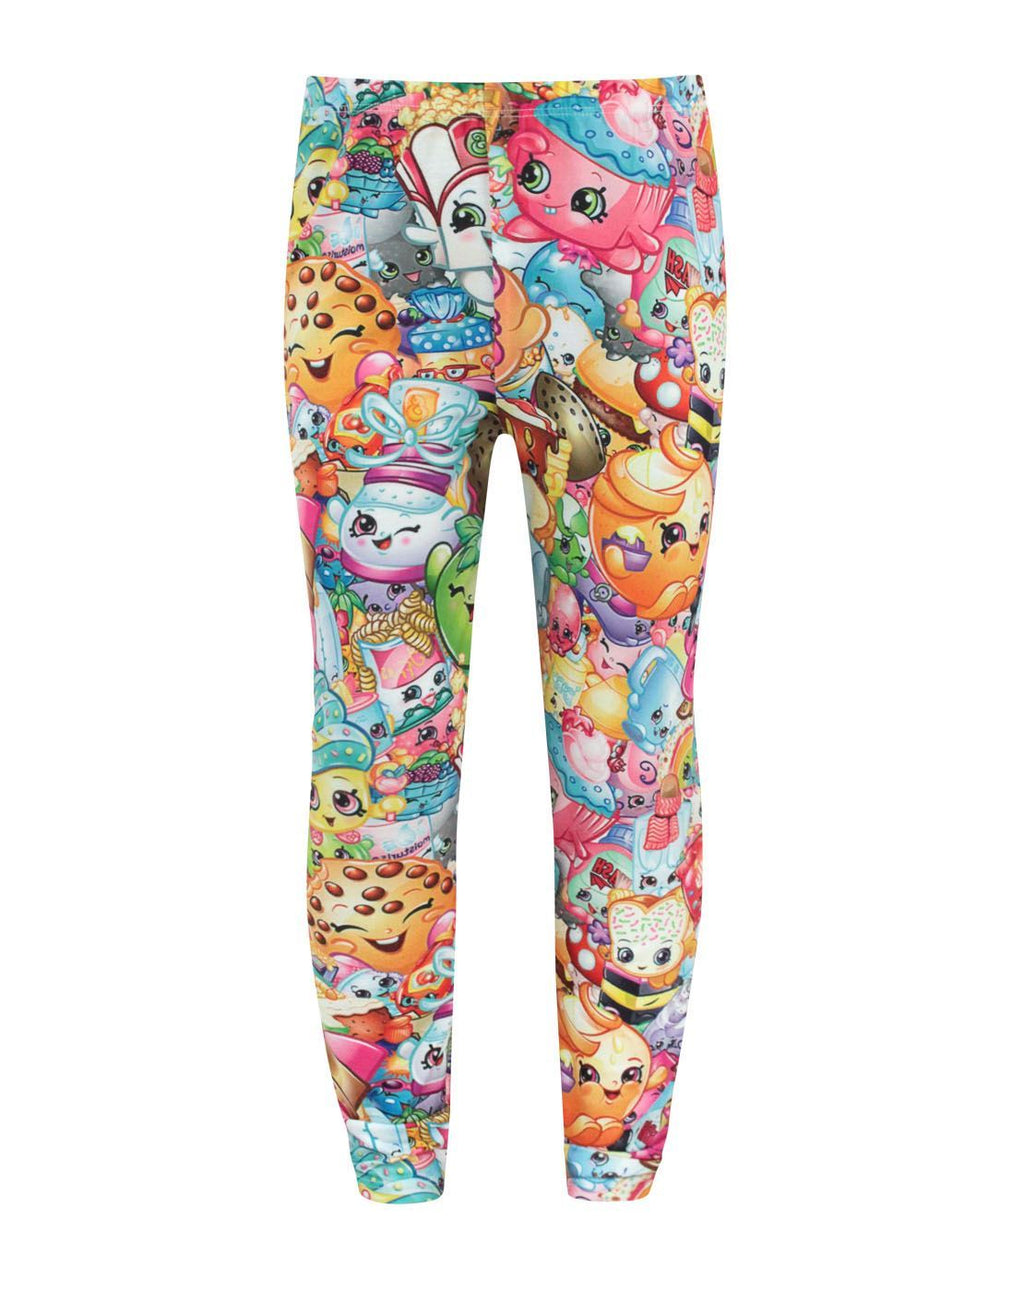 Shopkins Collage Girl's Leggings